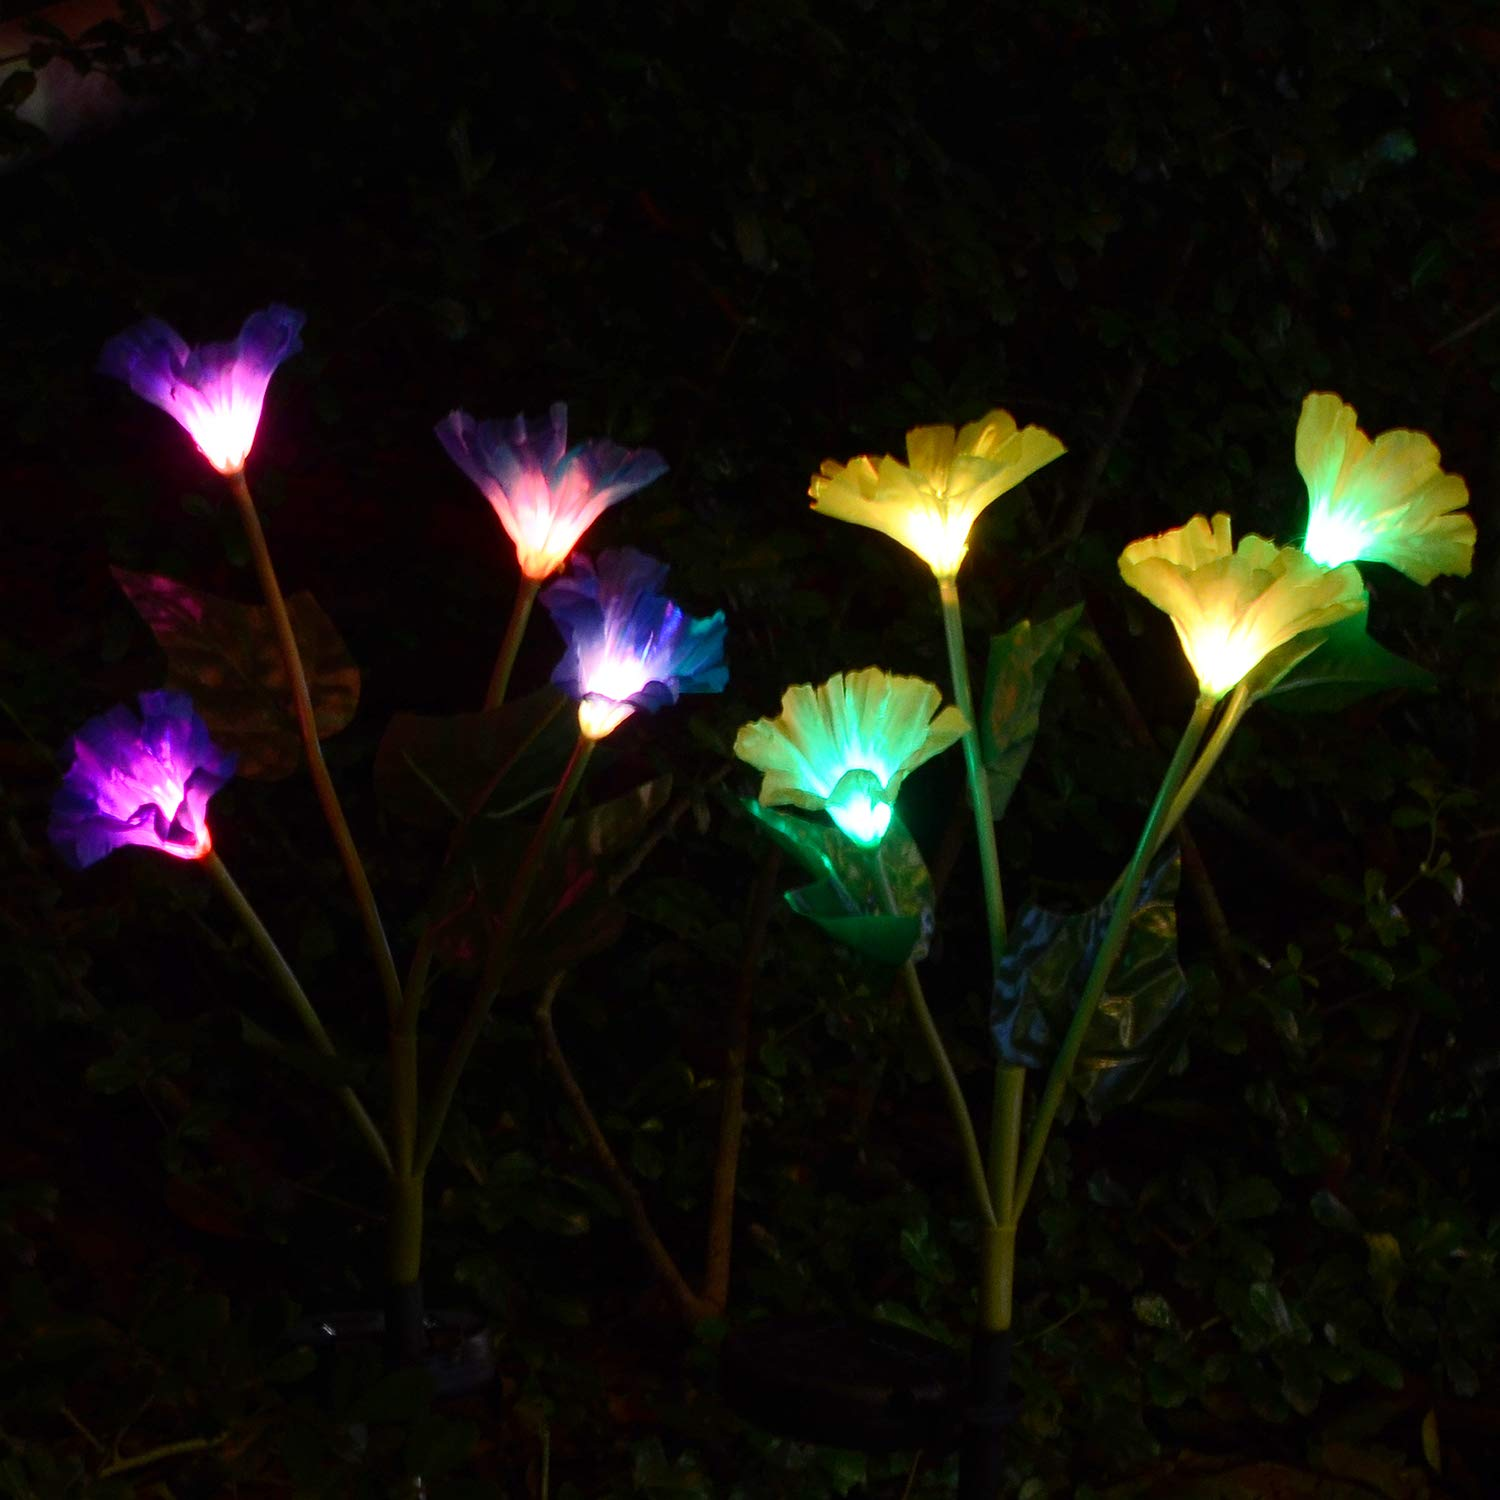 Doingart Outdoor Solar Garden Stake Lights 2 Pack Solar Powered Lights with 8 Morning Glory Flower, Multi-color Changing LED Solar Decorative Lights for Garden, Patio, Backyard (Blue and Yellow)